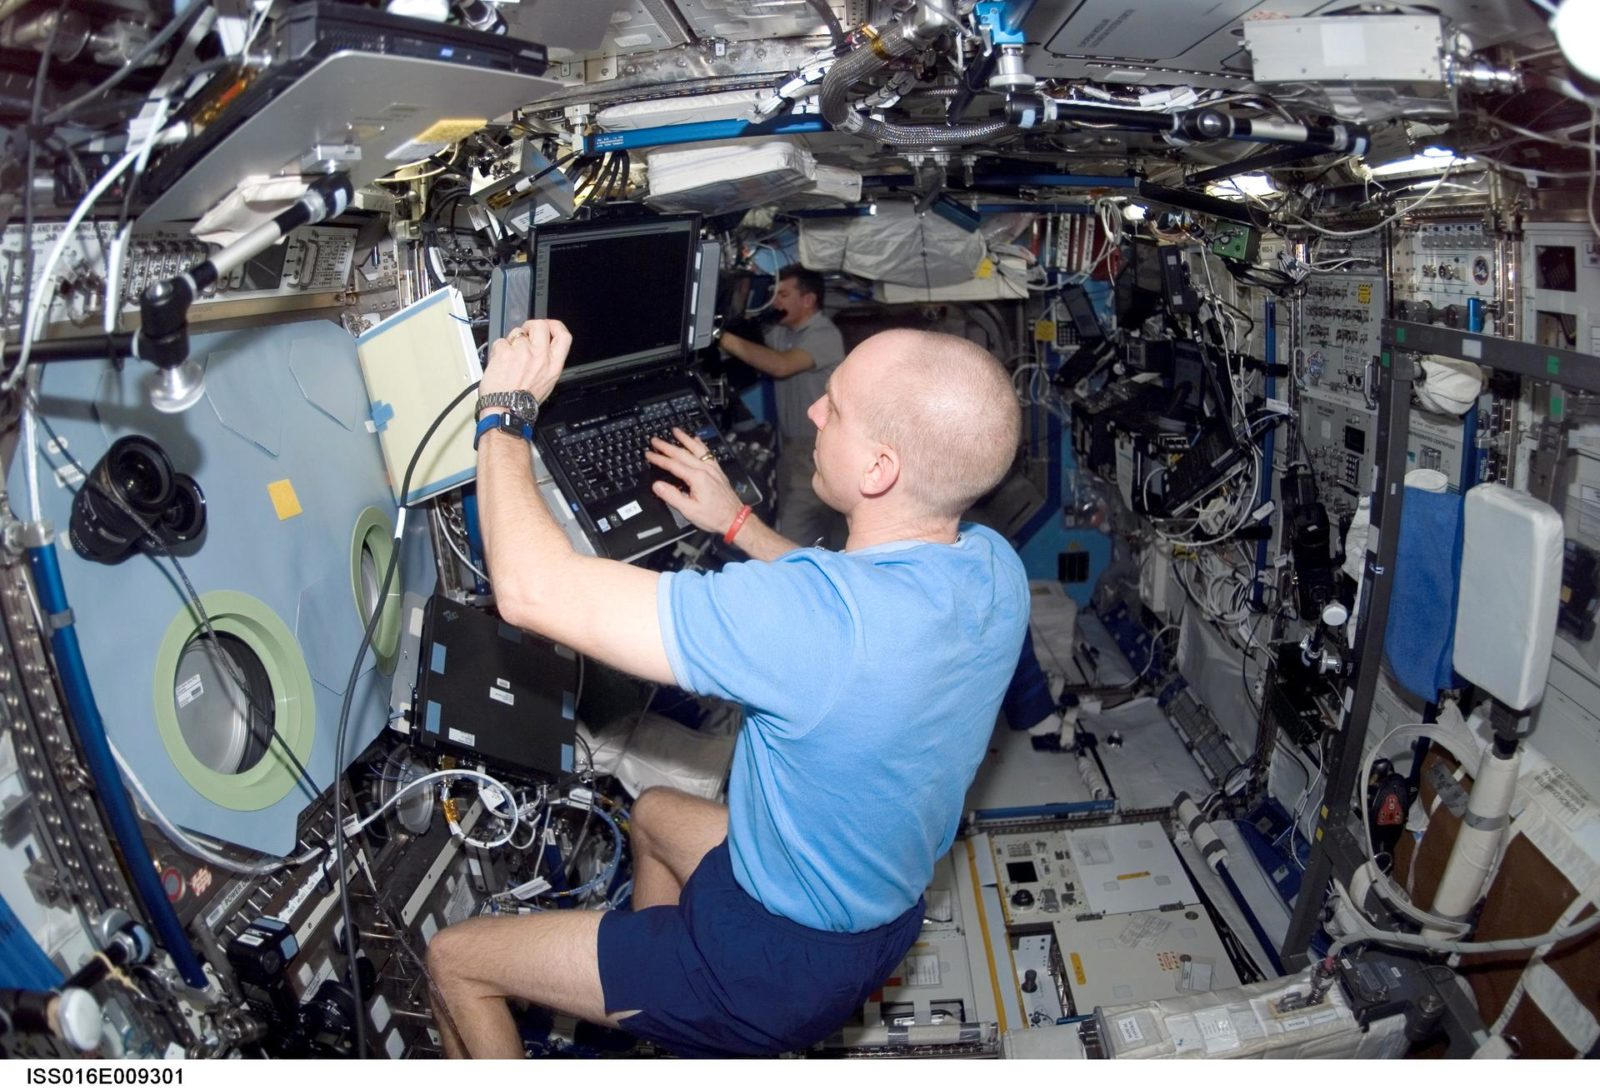 Anderson in the US Lab during Expedition 16 / STS-120 joint operations